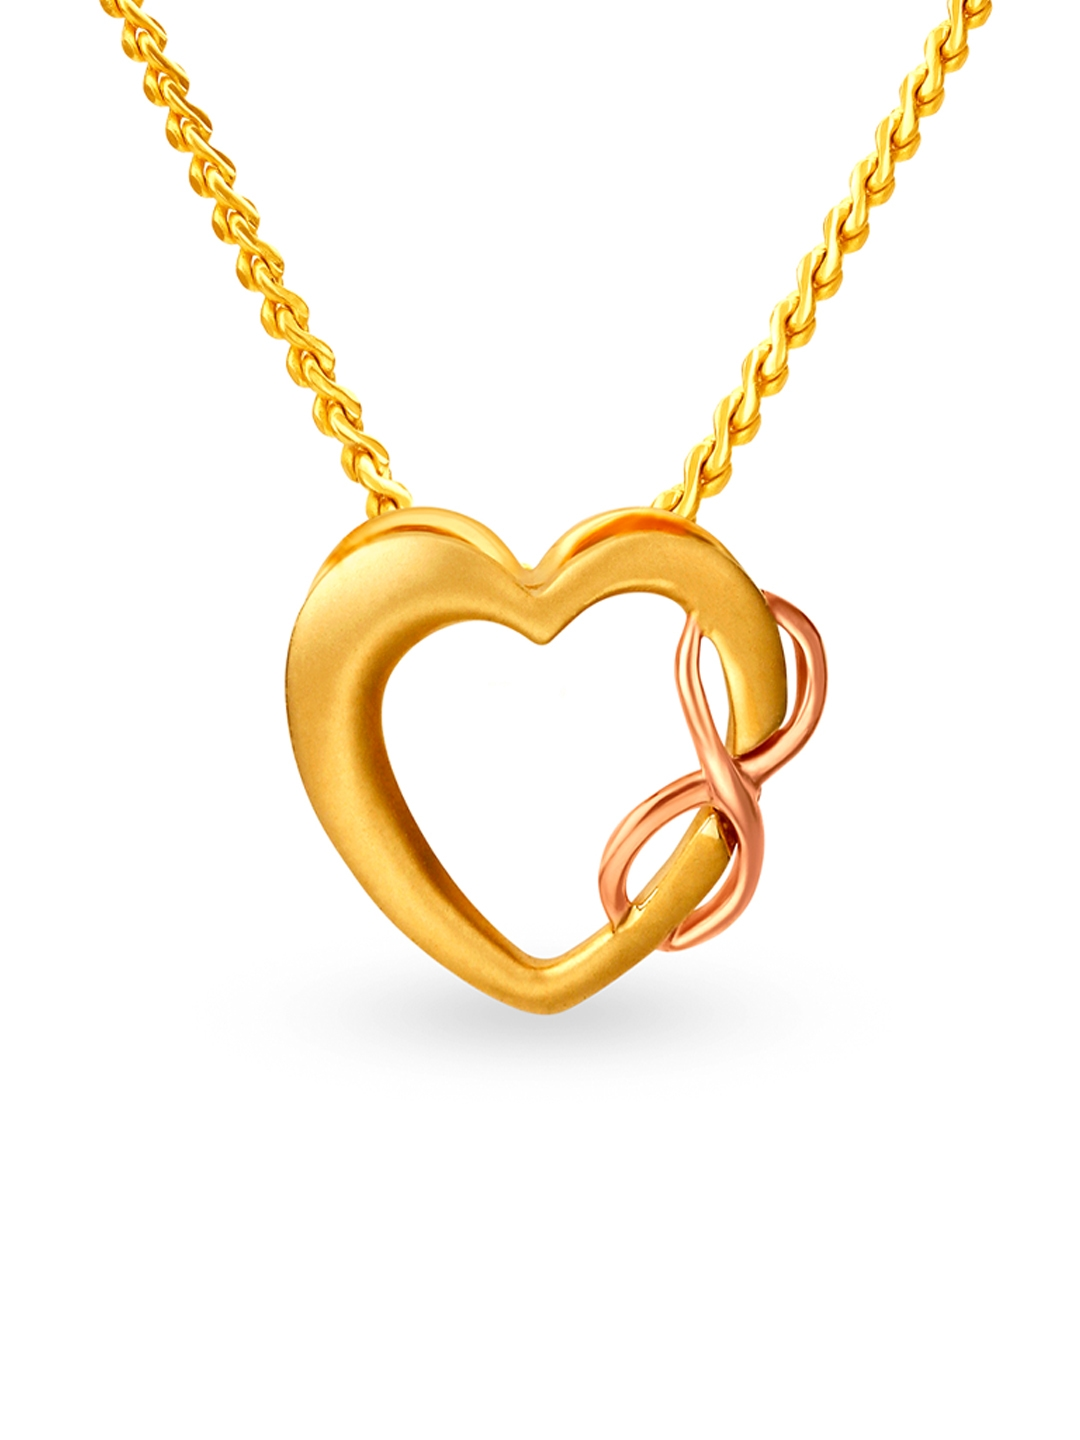 Mia by Tanishq 14KT Yellow Gold Pendant